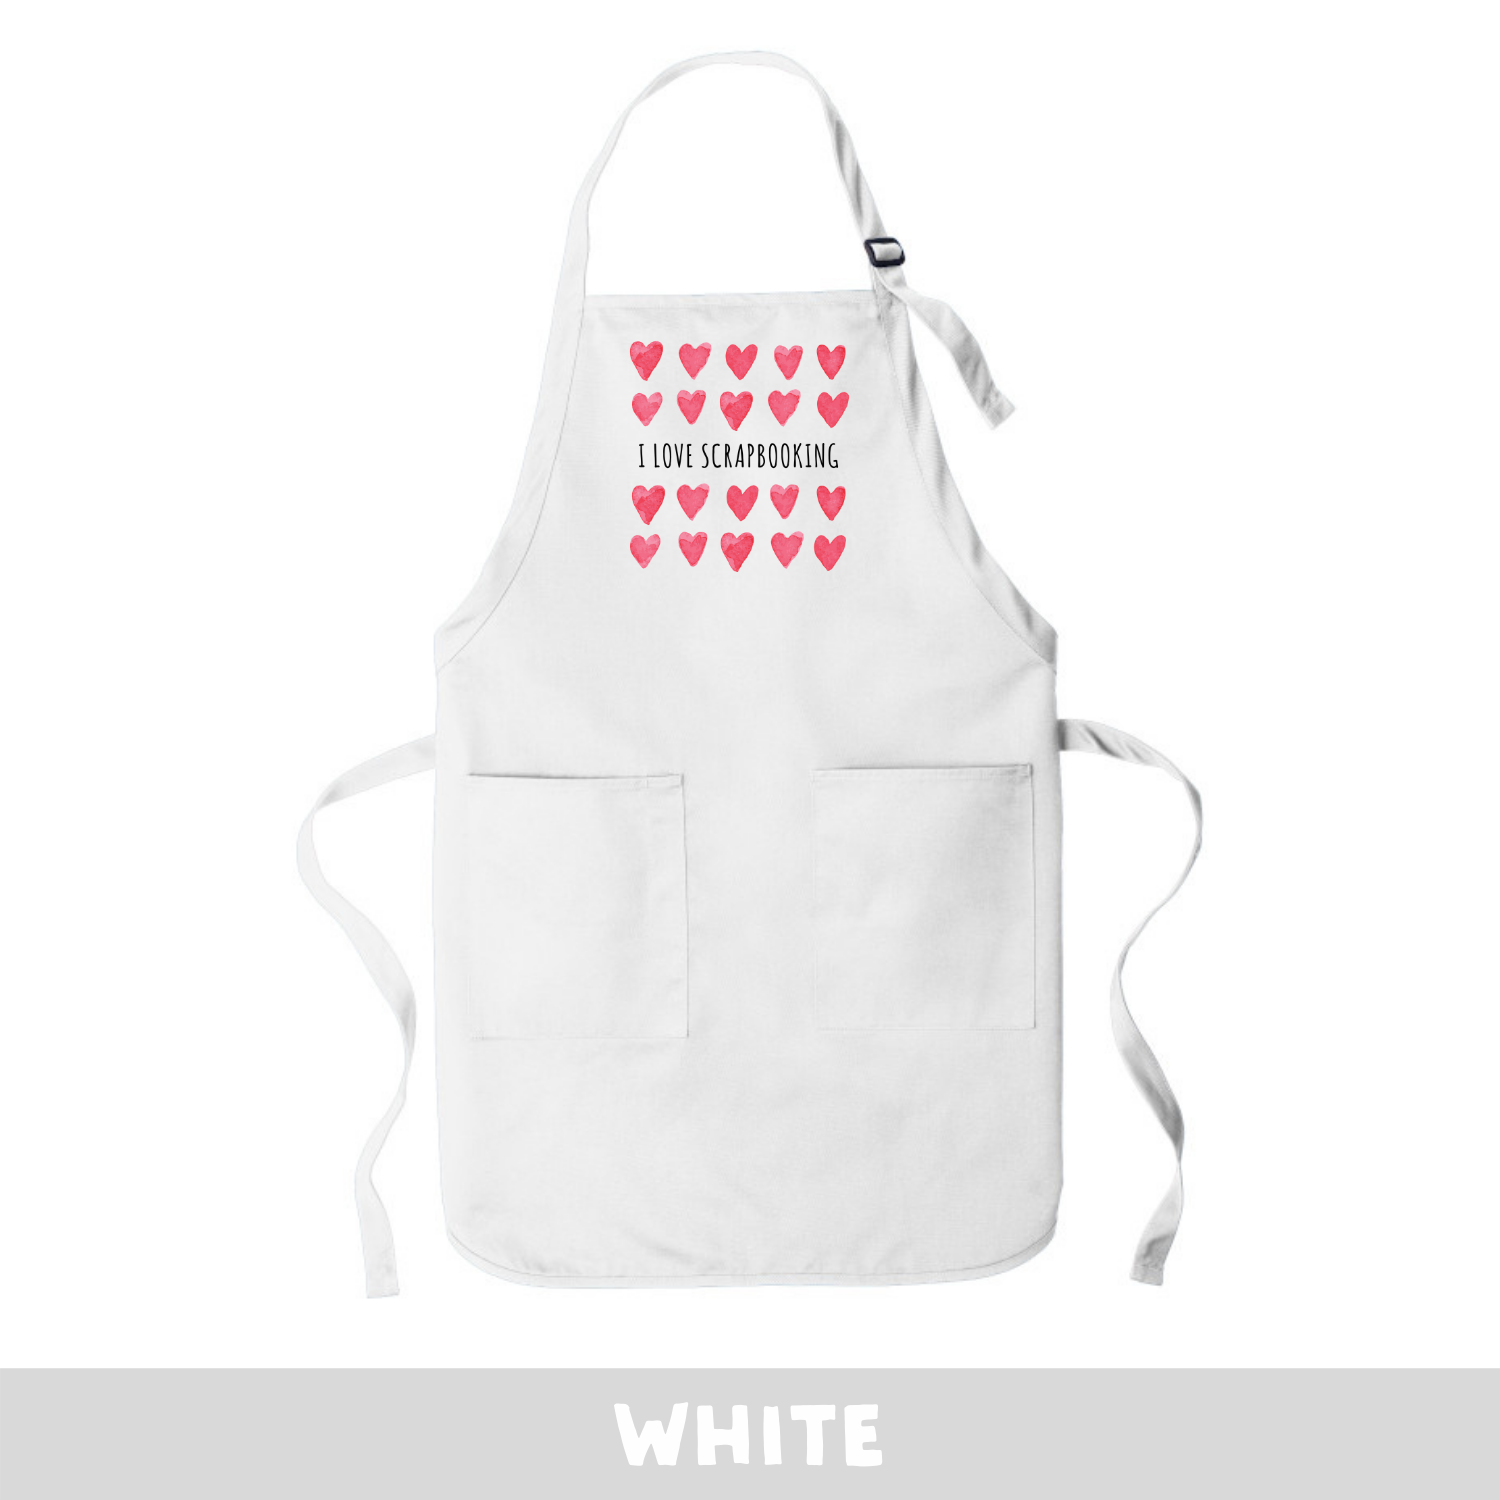 White - Apron - I Love Scrapbooking